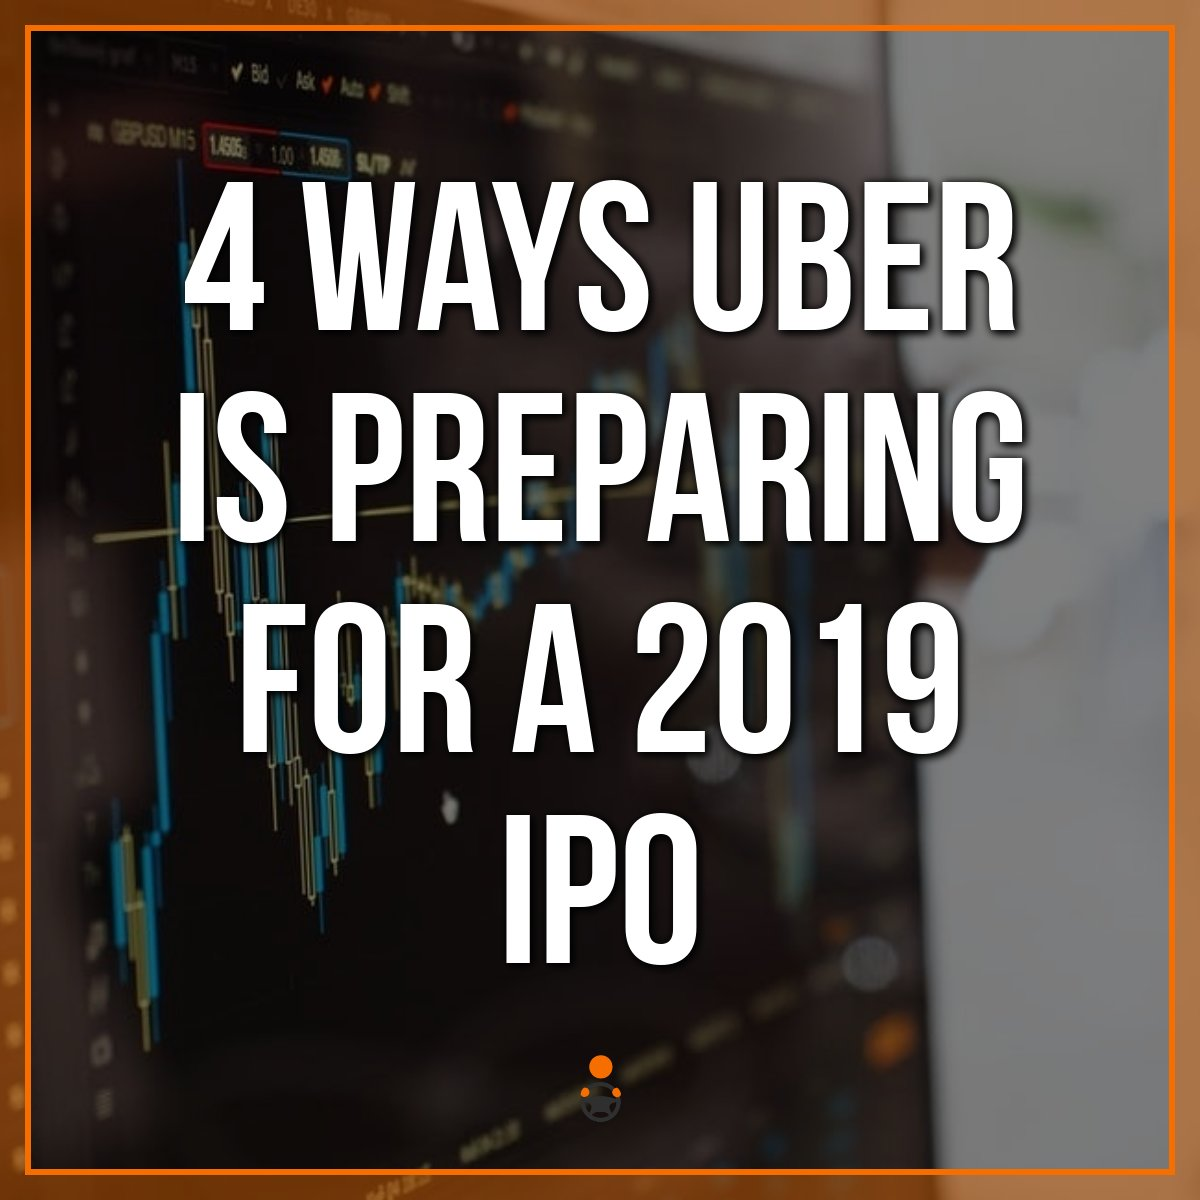 Uber IPO 2019 – 4 Ways Uber is Preparing for The Big Day